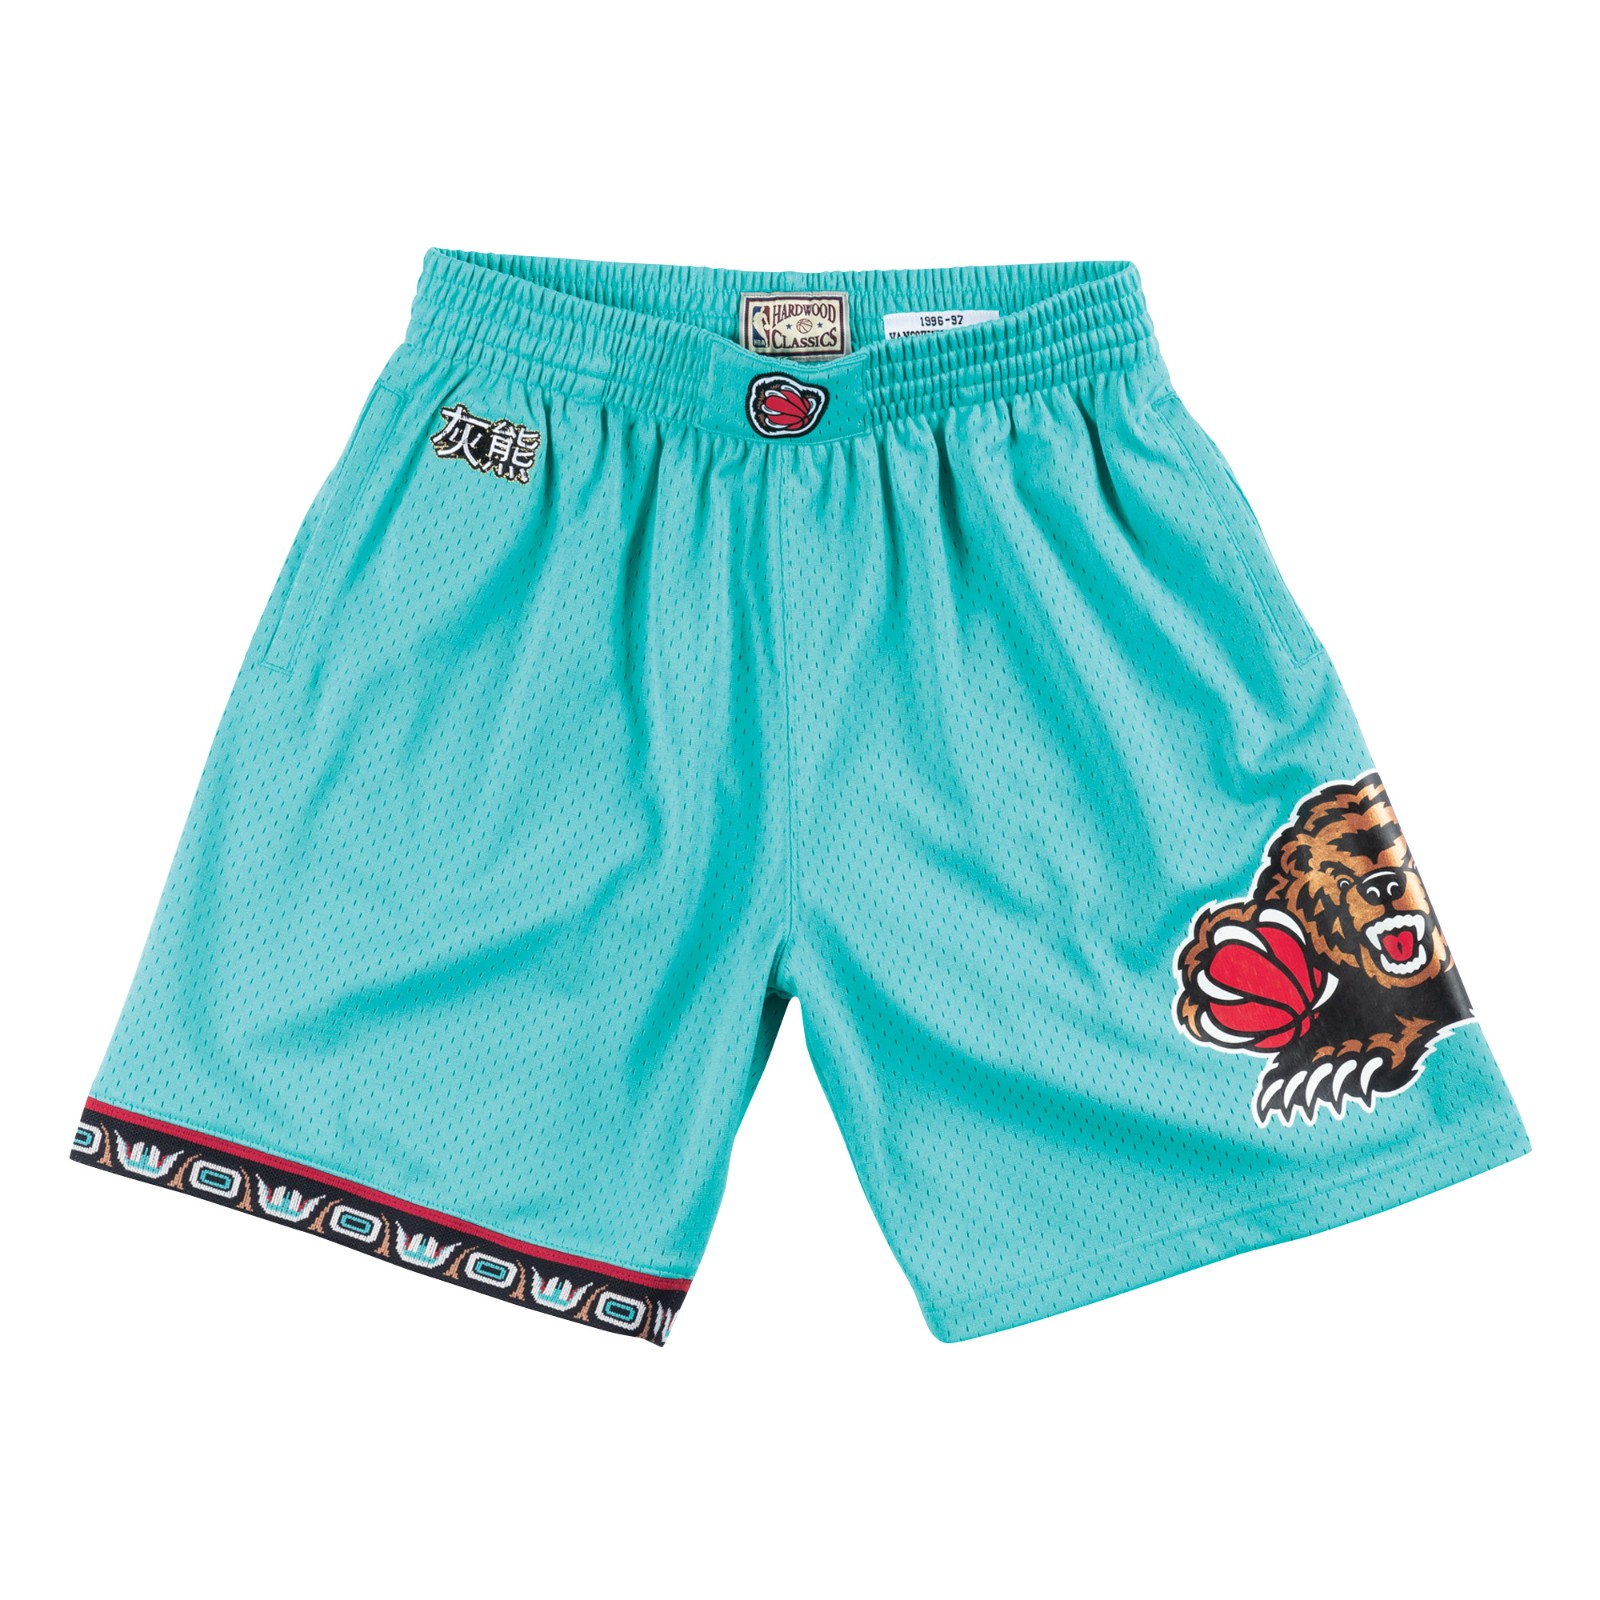 66a6014ad3 Vancouver Grizzlies NBA Men's Mitchell & Ness 1998-99 Chinese New Year CNY  Teal Swingman Shorts